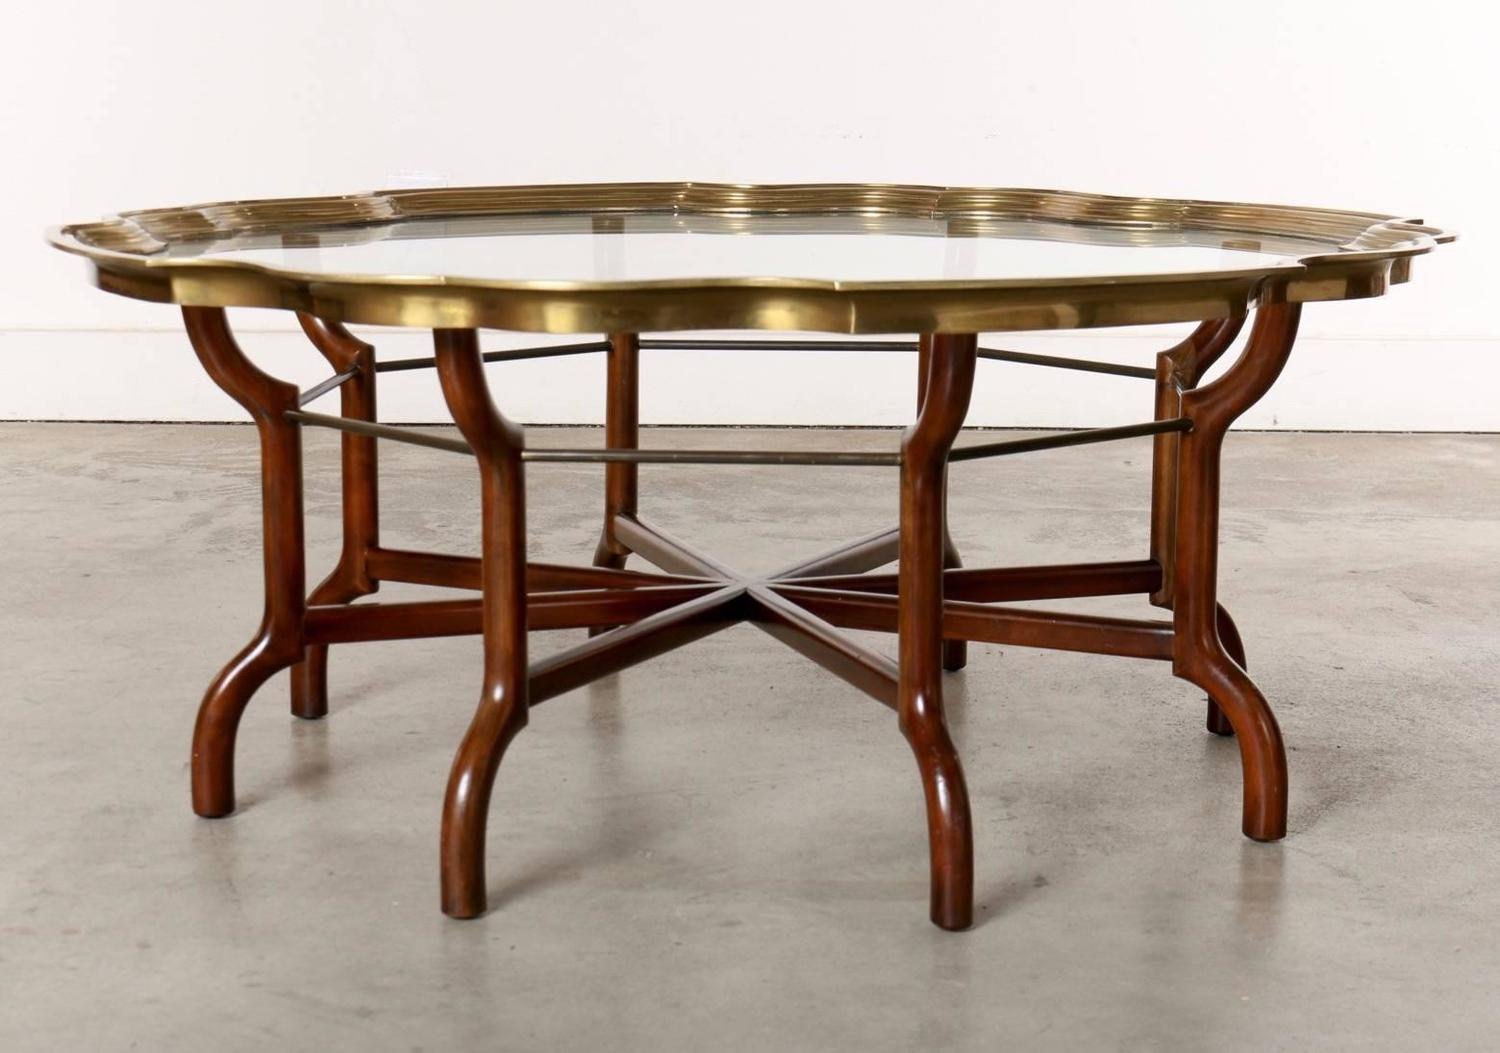 Baker brass and glass round tray top coffee table at 1stdibs for Round brass and glass coffee table